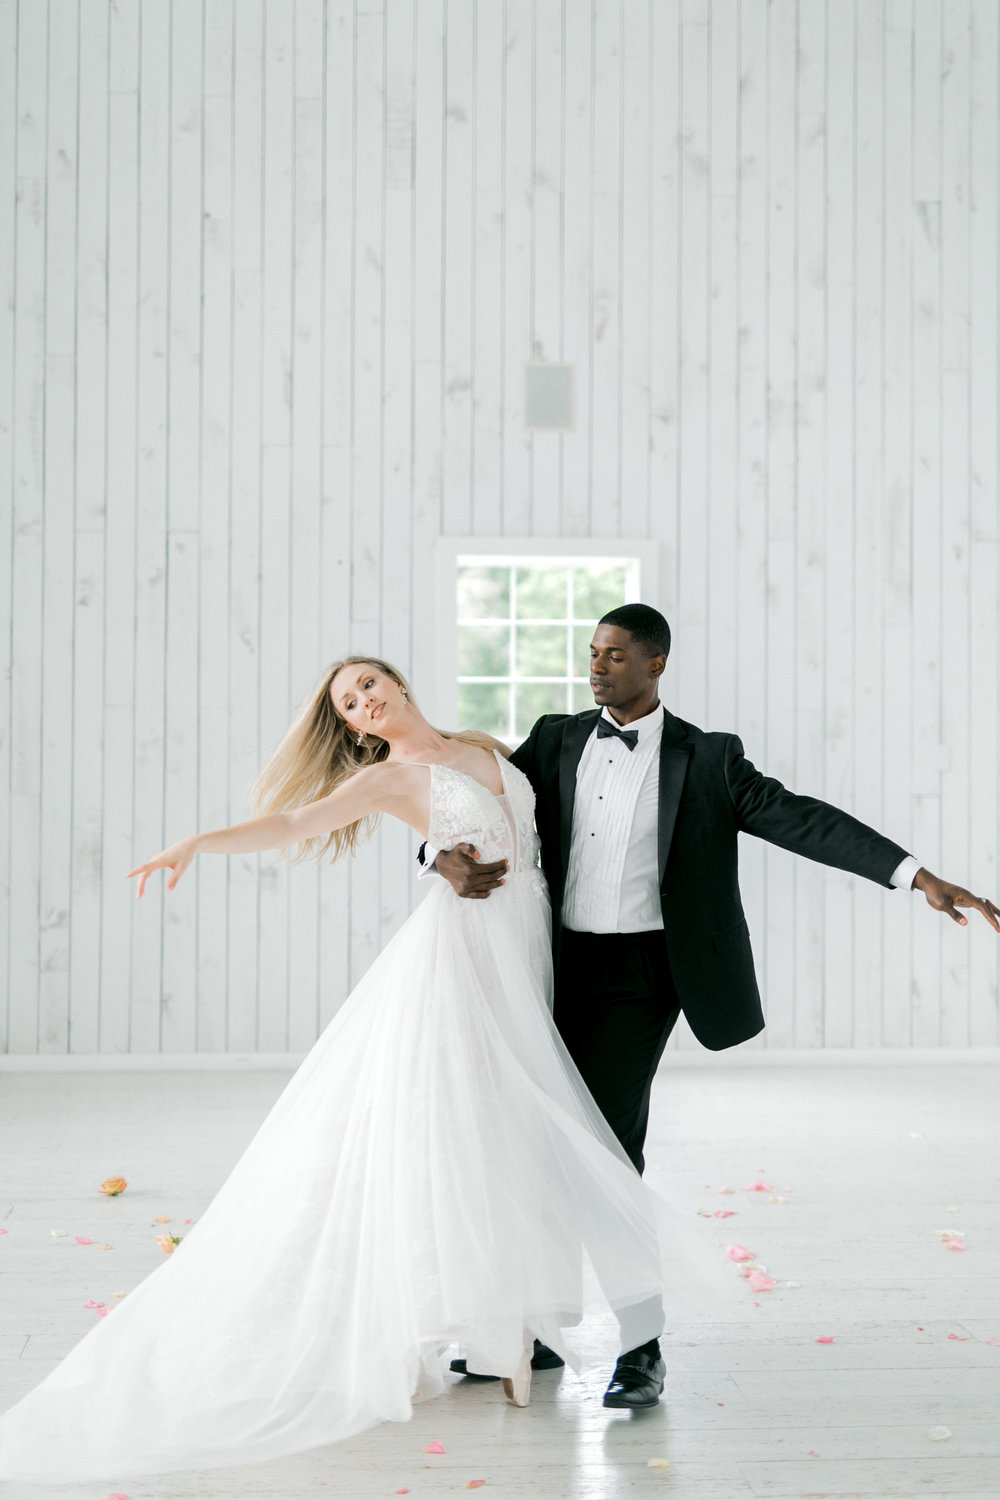 Ballet Inspired Wedding | Rustic Fall White Barn Wedding with Pastel Colors